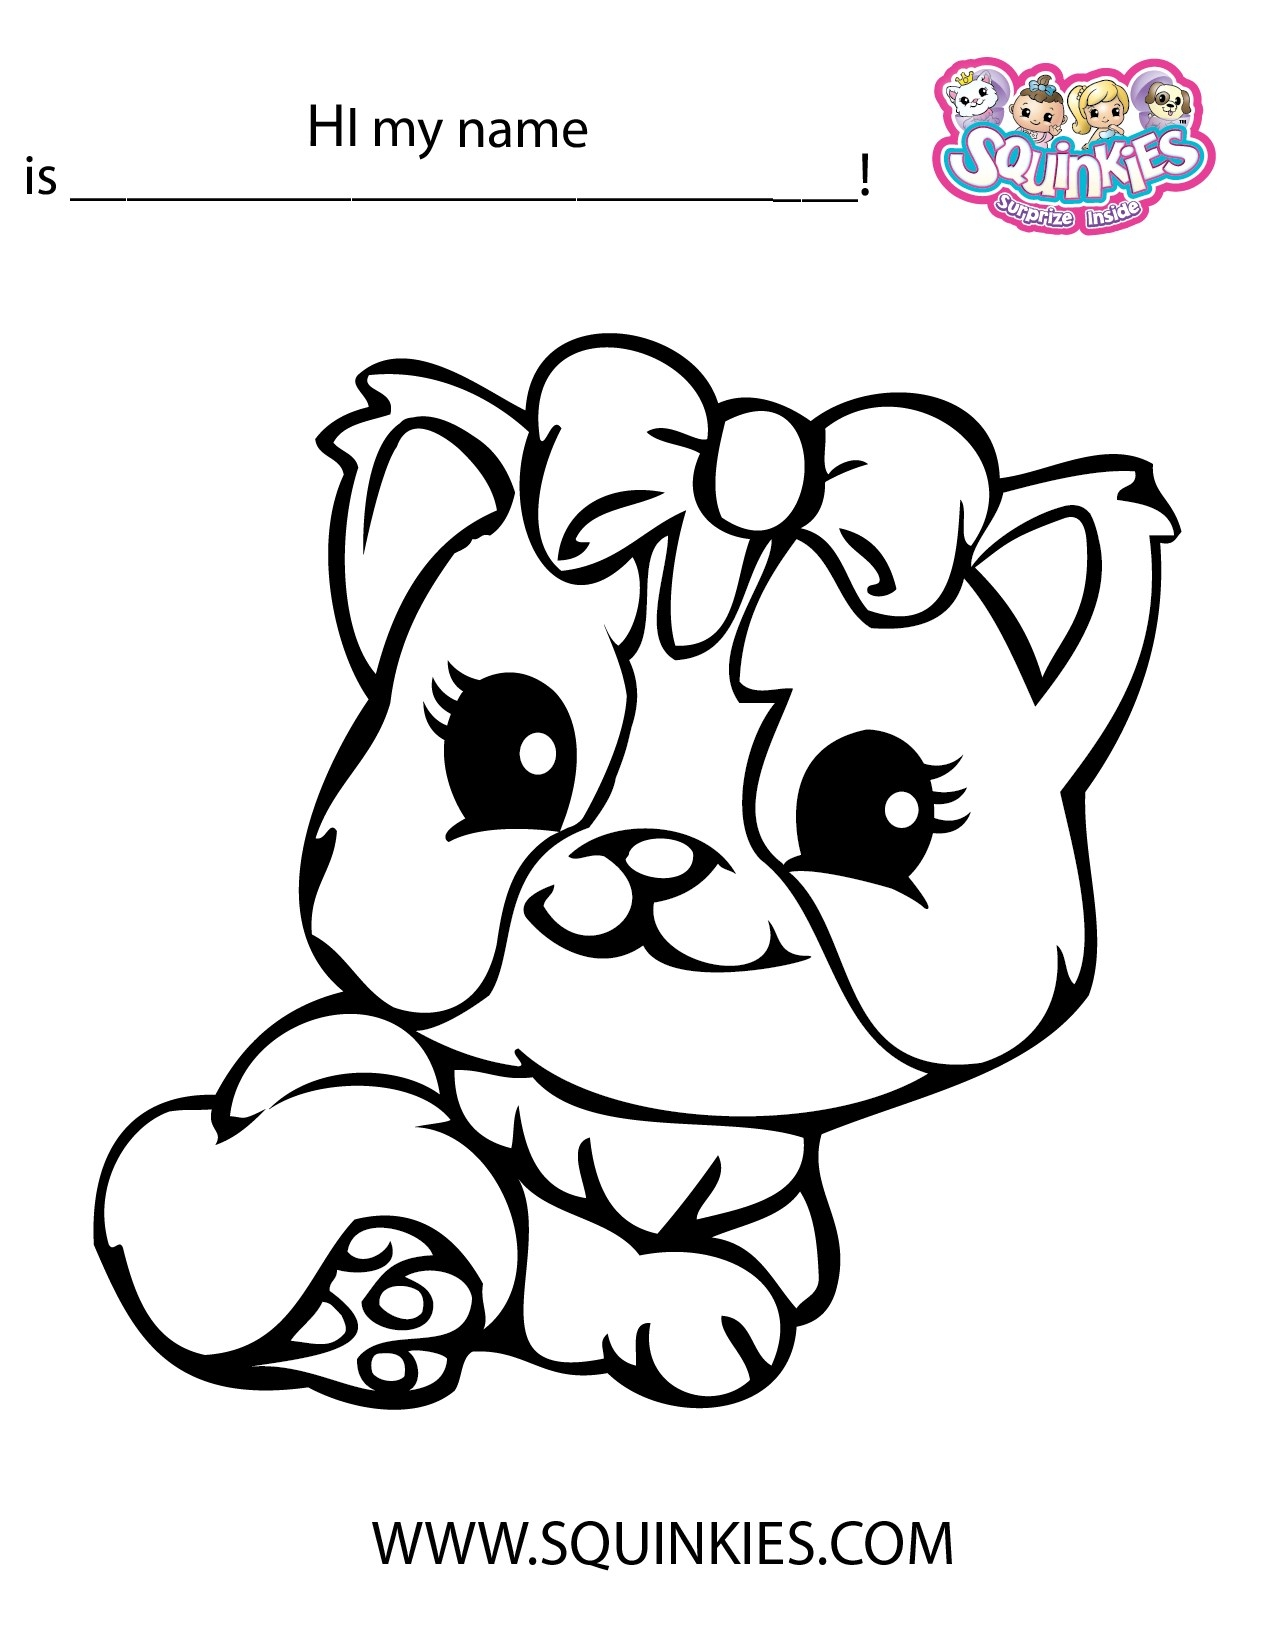 Route 66 Coloring Pages | Free download best Route 66 Coloring Pages ...